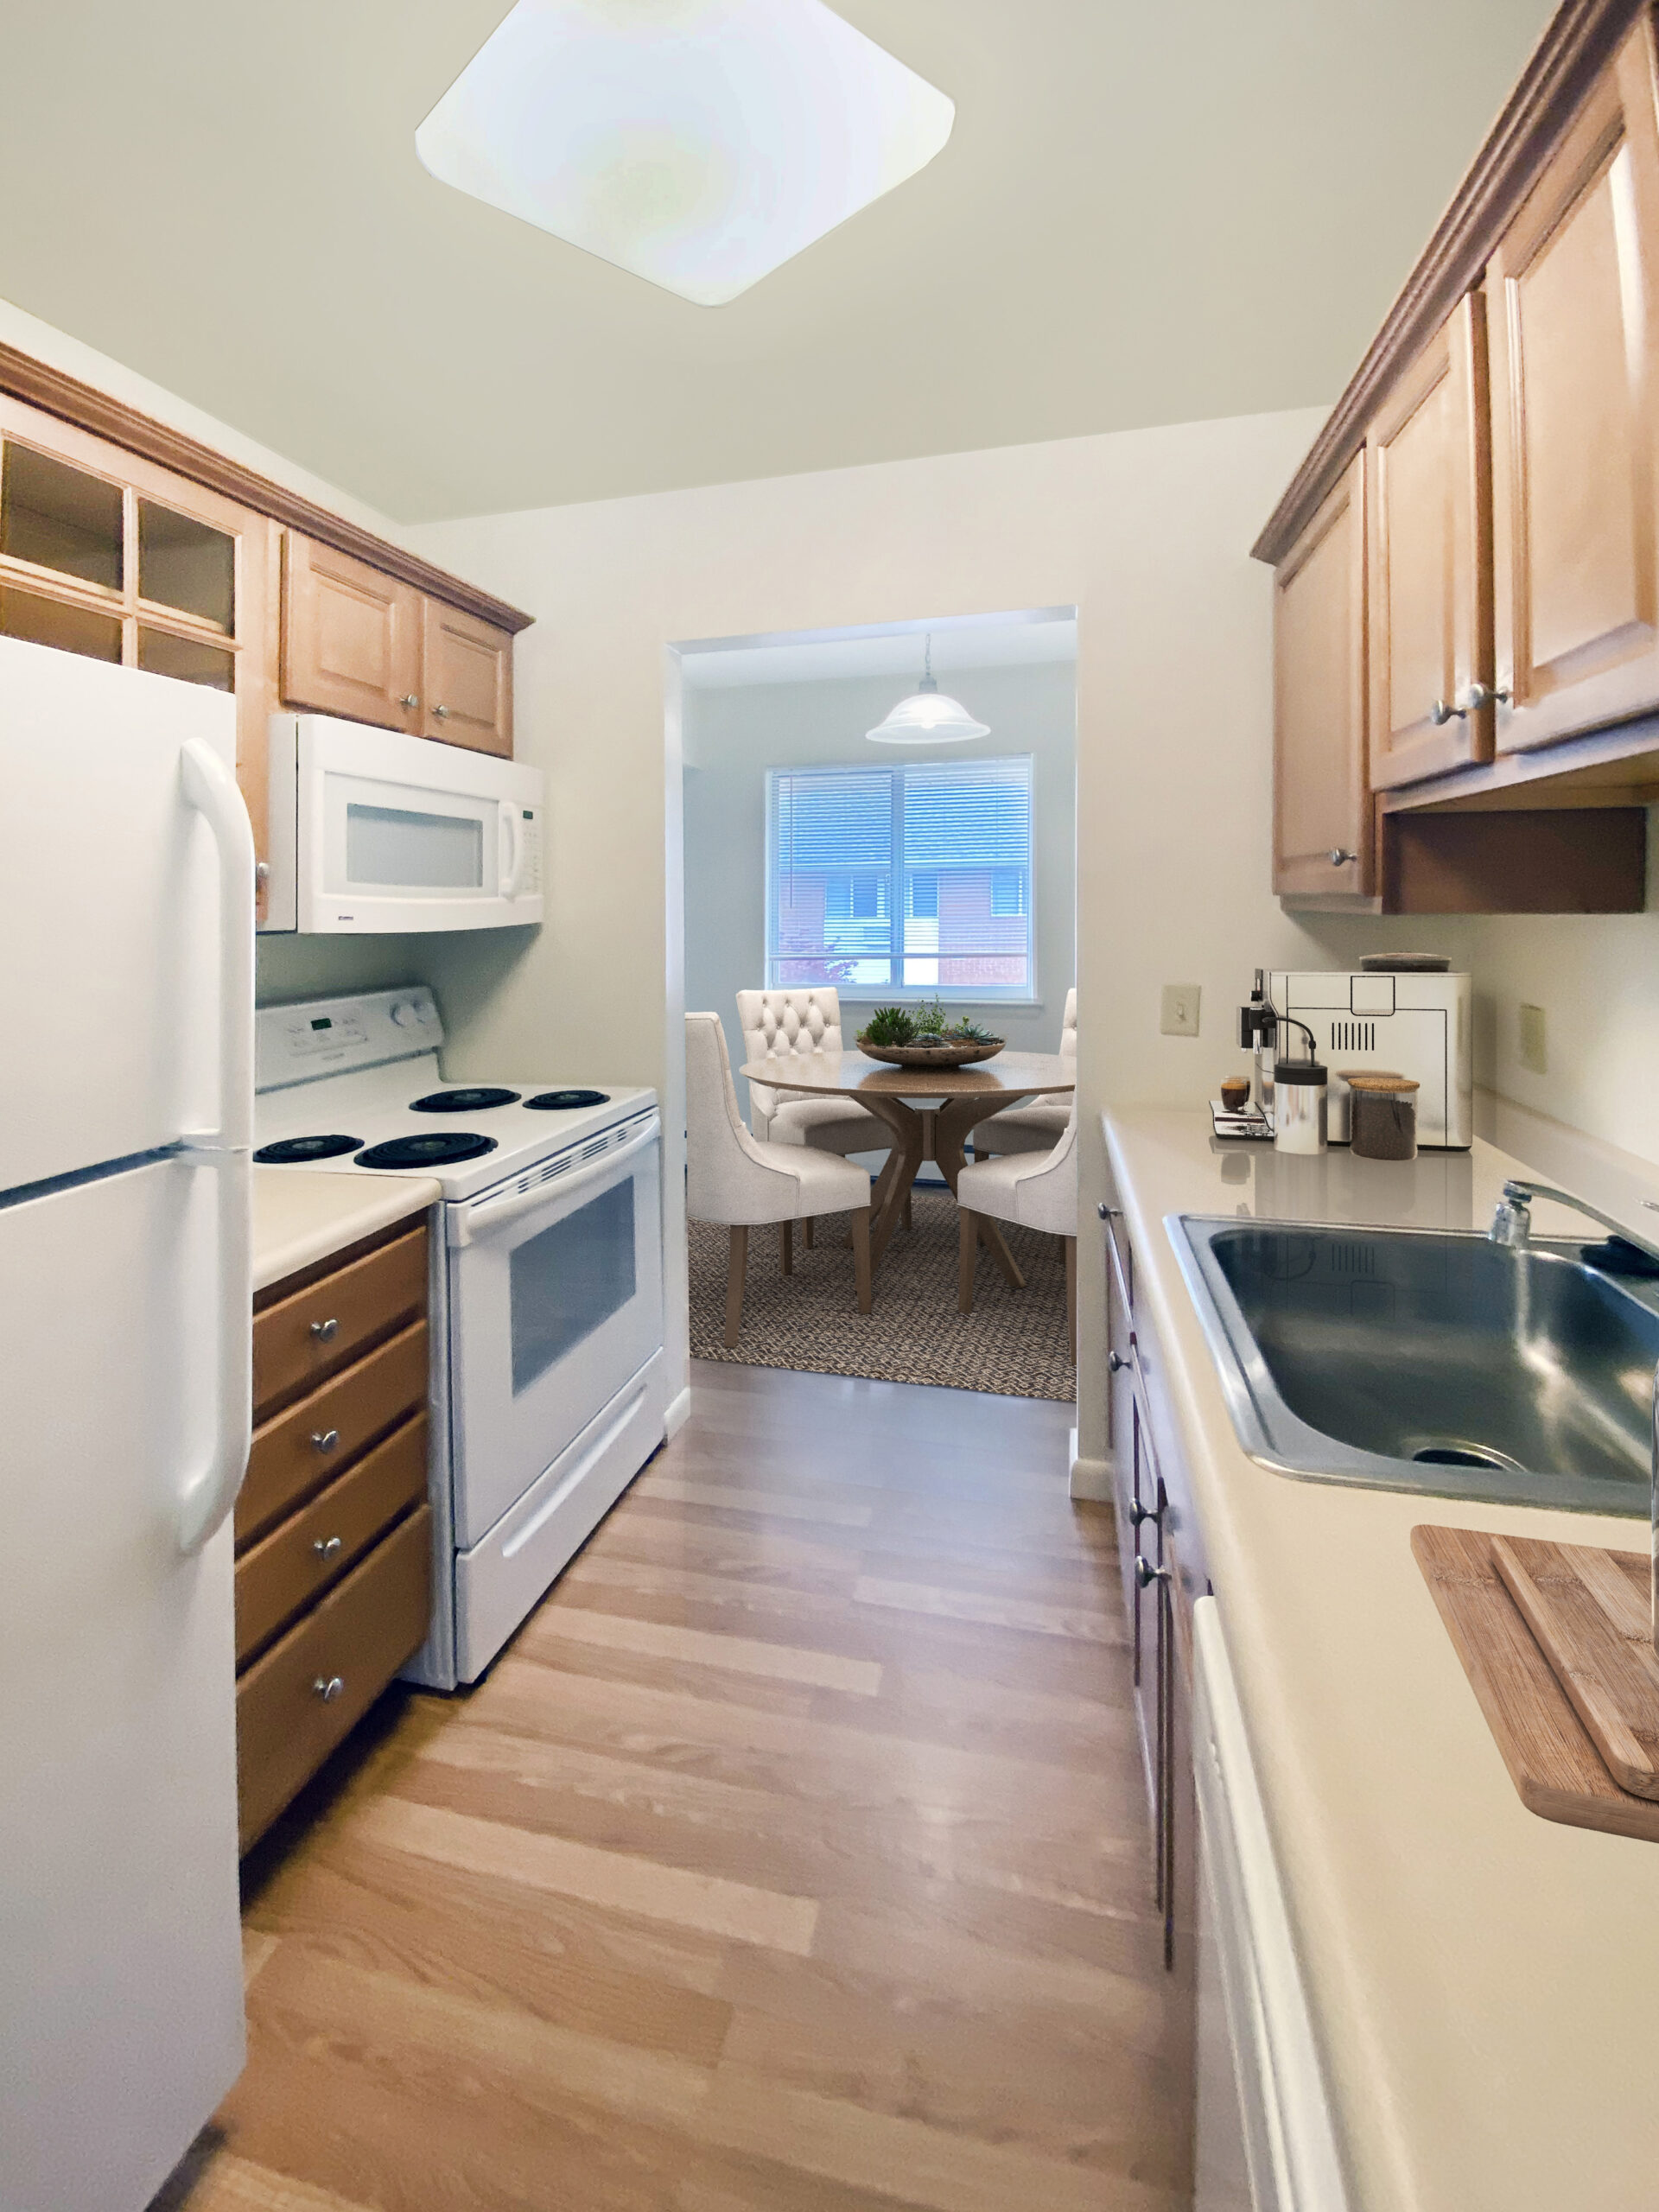 1 Bedroom Clintwood Court Clintwood Apartments